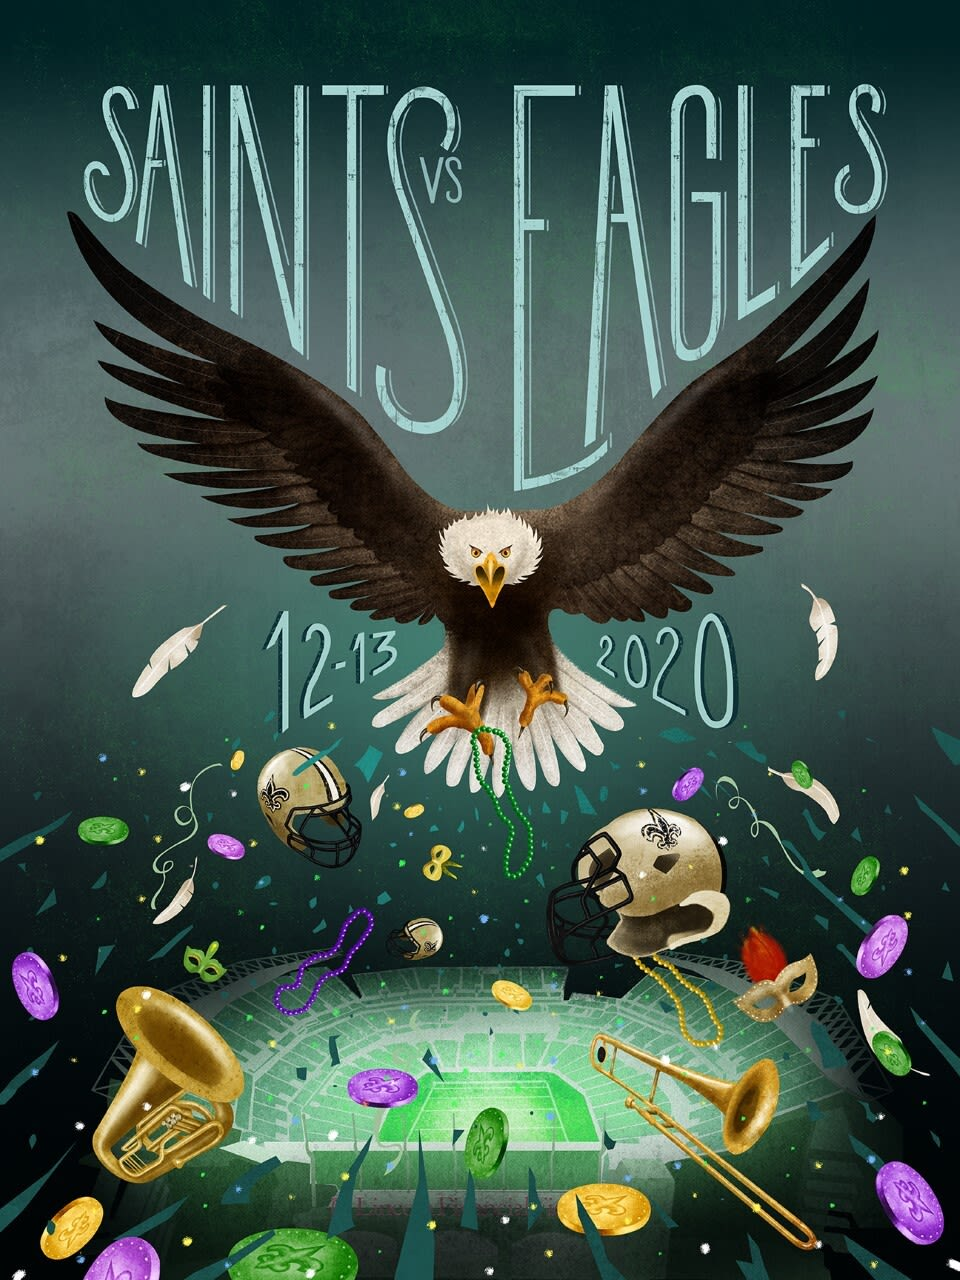 Week 14: Saints vs. Eagles